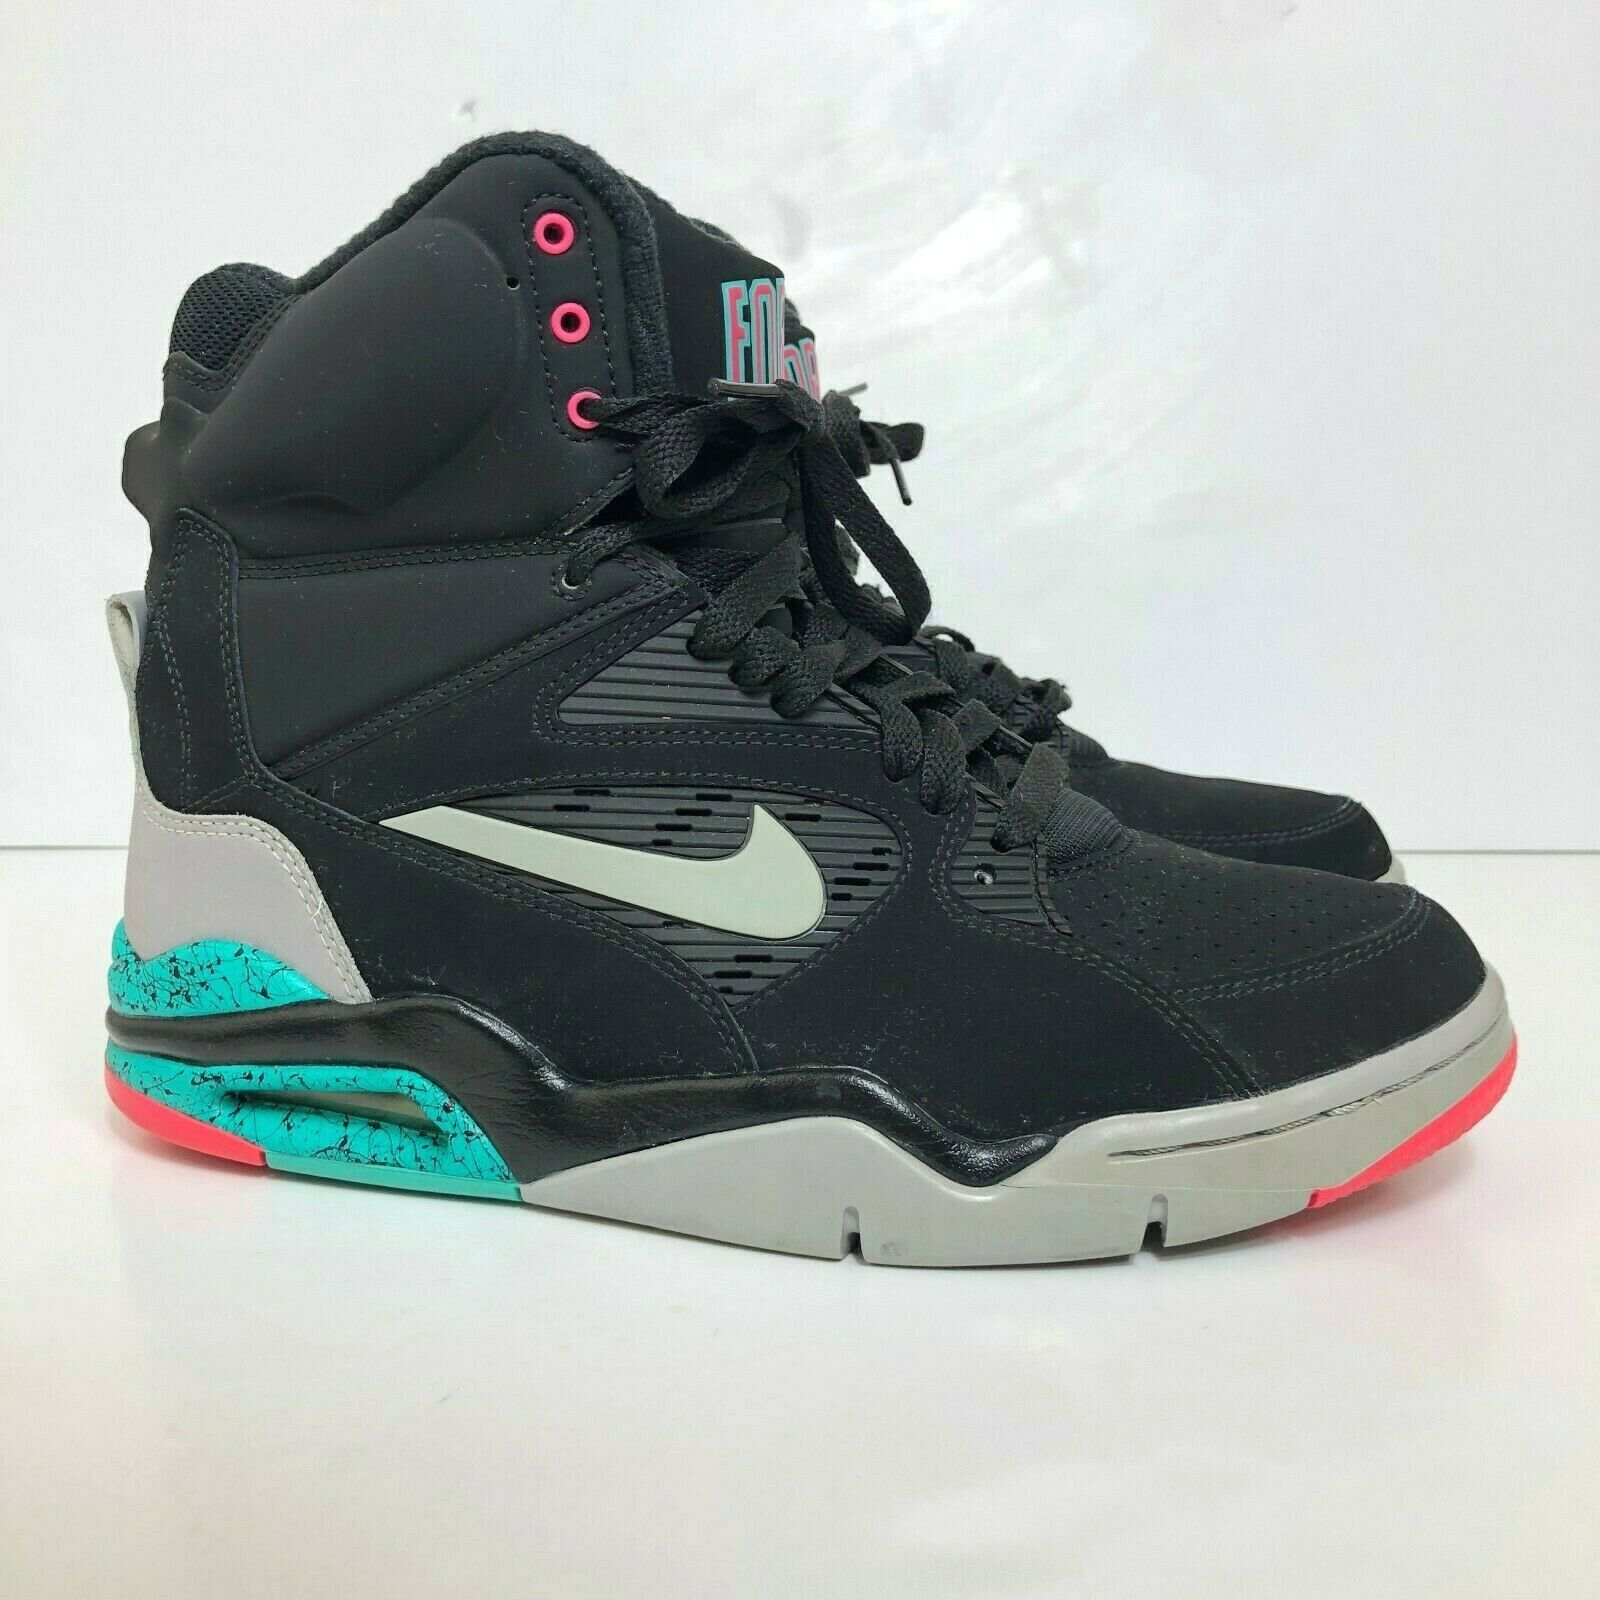 Nike Air Command Force Spurs 684715-001